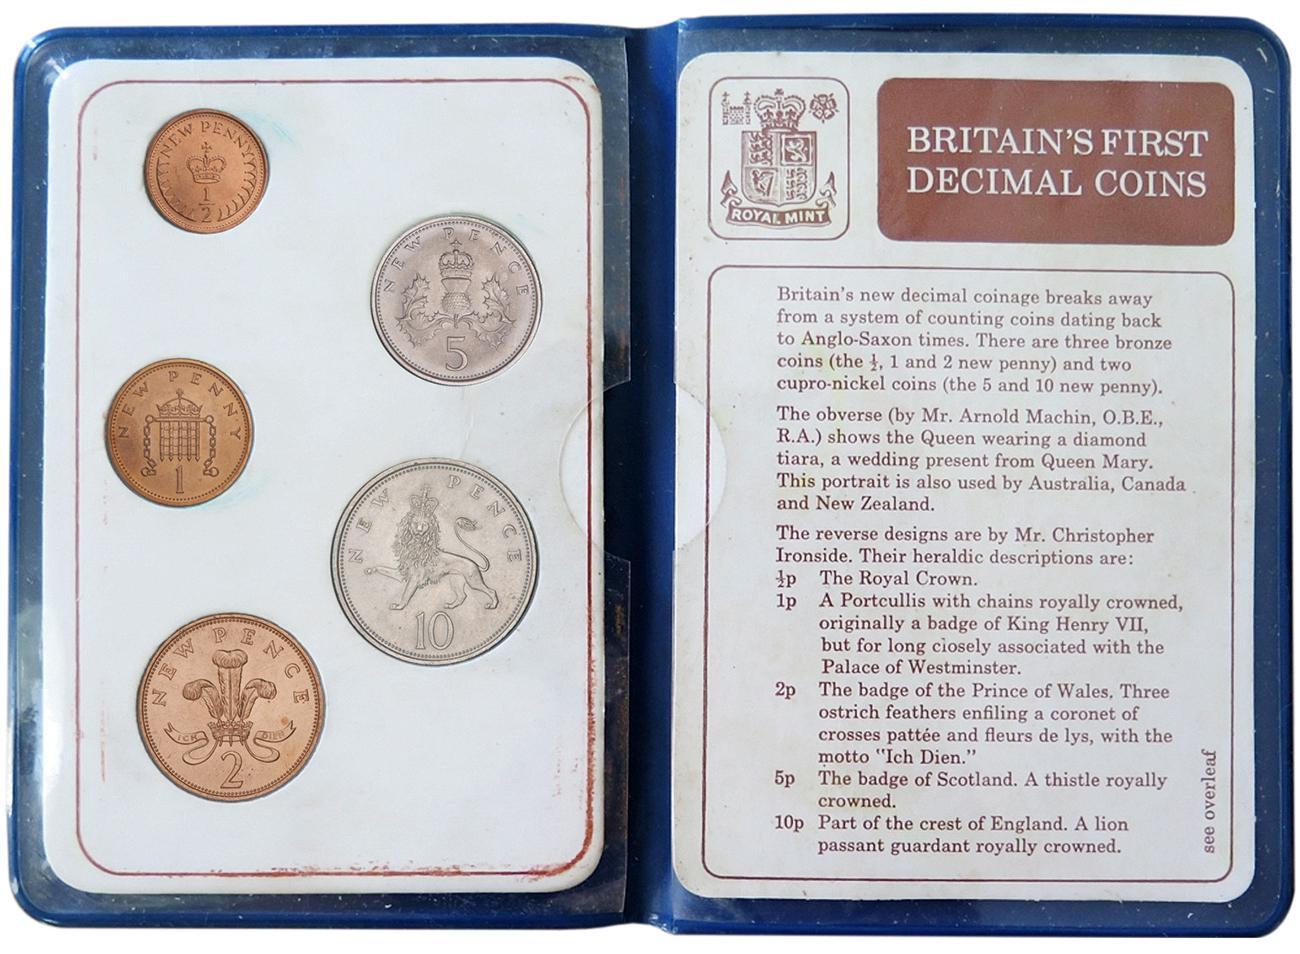 Folder open to show five various coins on the left and their story on the right.